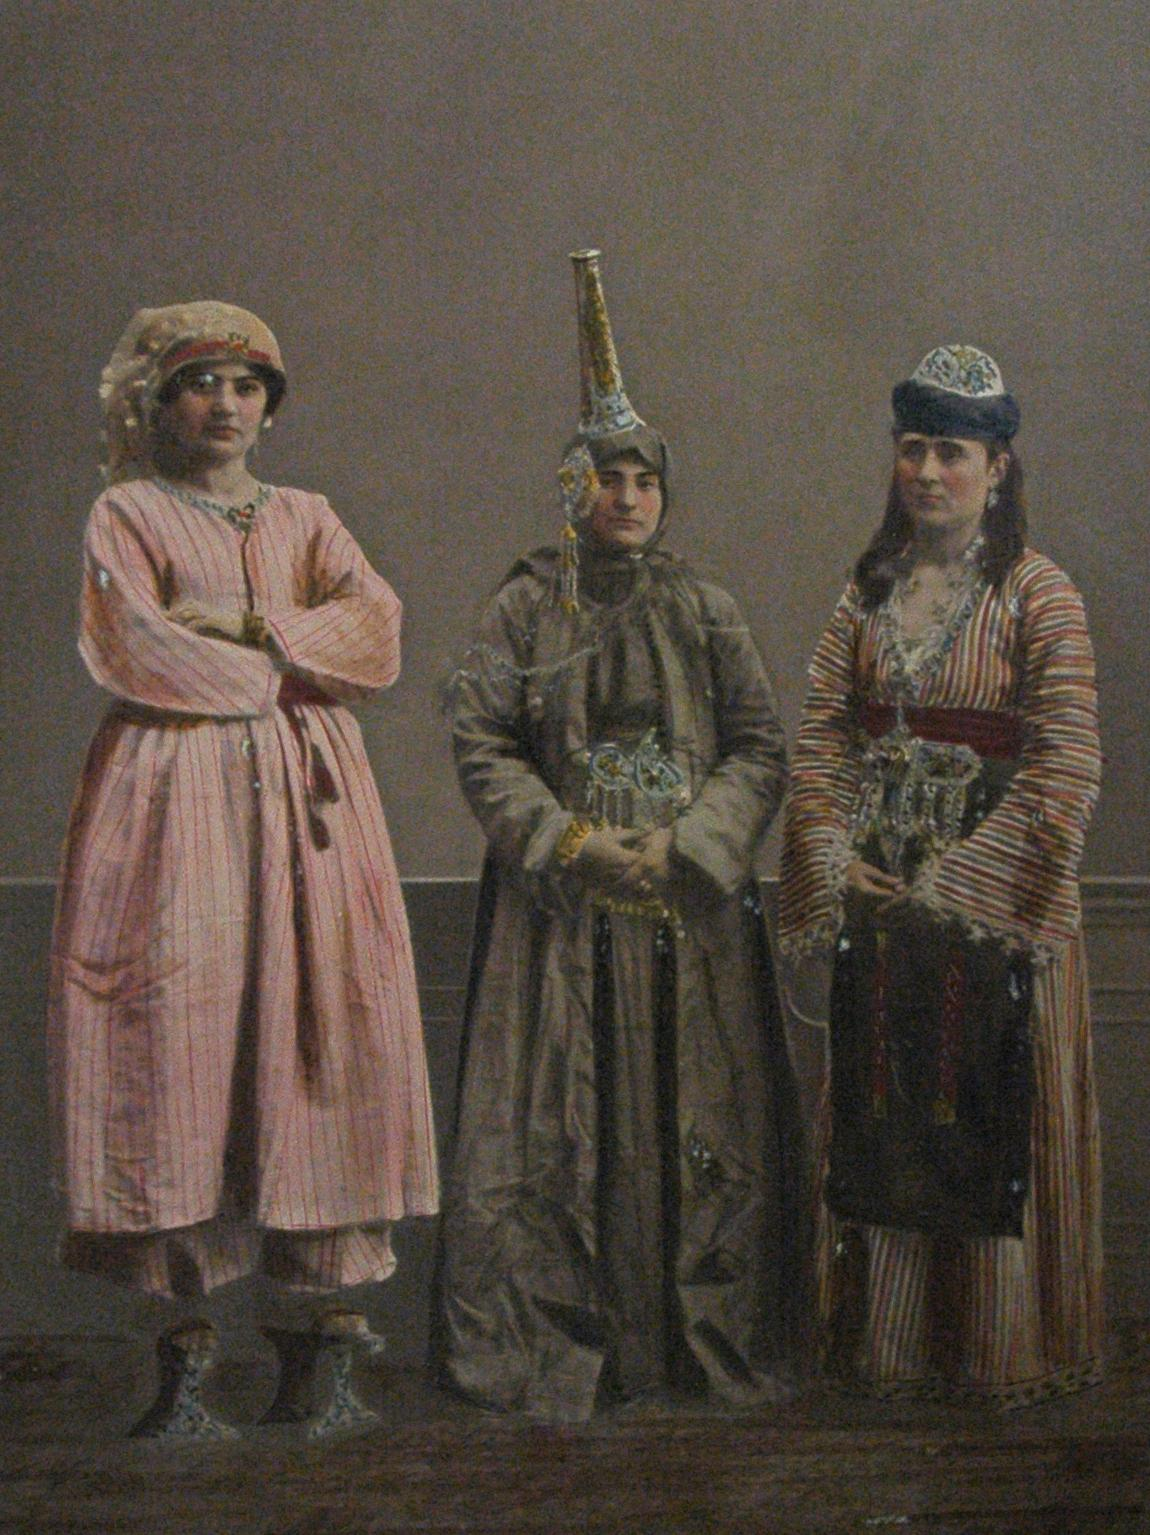 Photographs from a book published by the Ottoman Imperial Commission for the World's Fair in 1873 illustrate Syria's diverse cultures. Here, an Arab woman (left) and a Druze woman (center) stand with another woman; all are from Damascus.